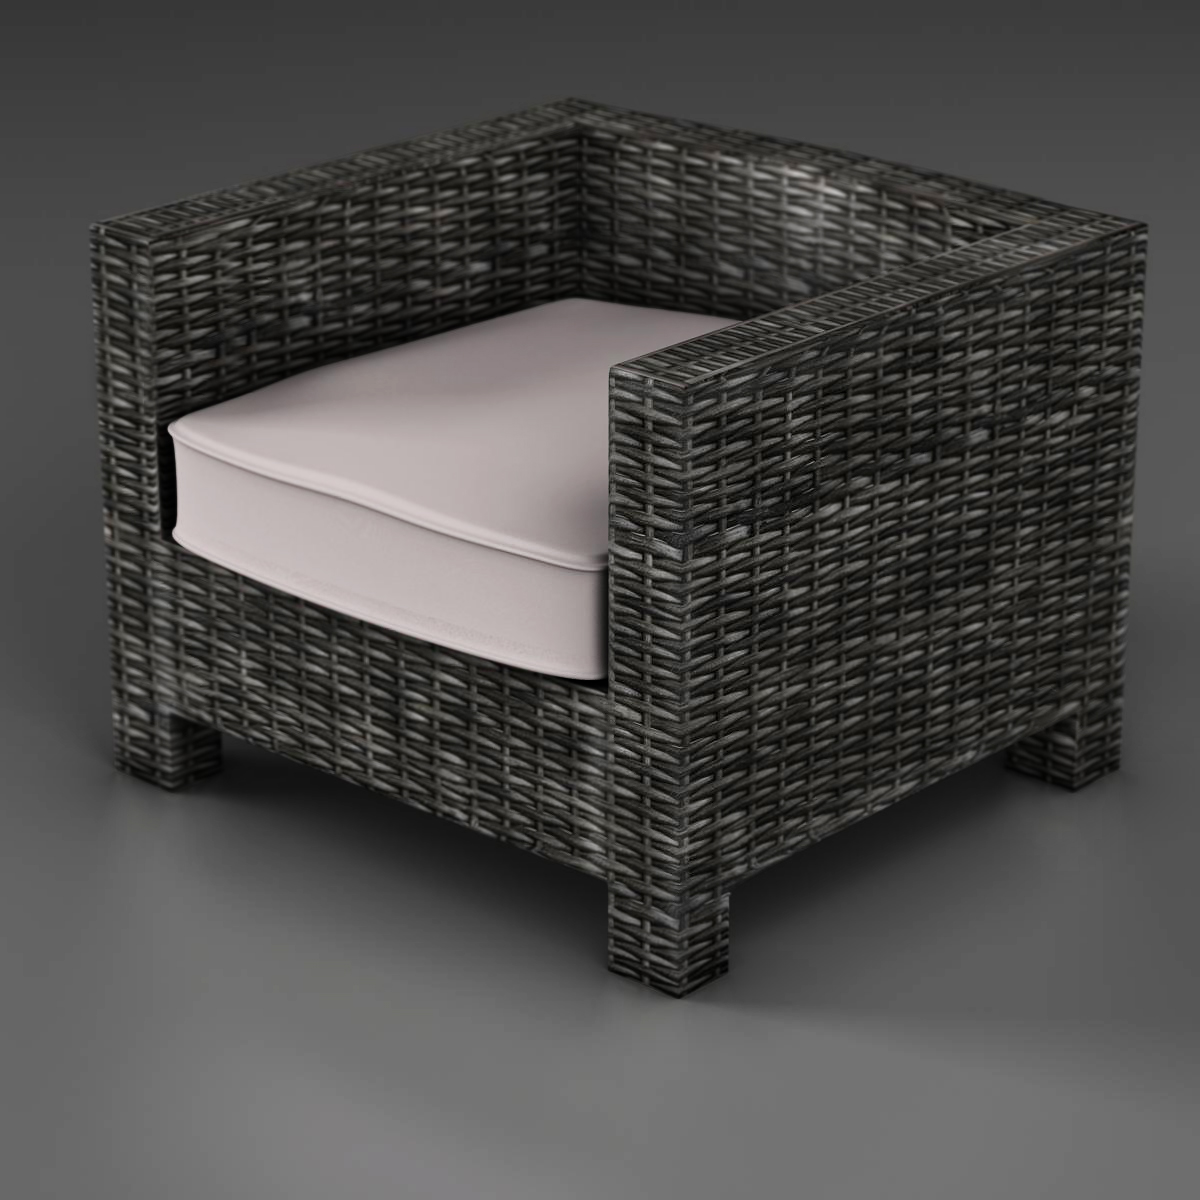 wicker couch 3d model 3ds max fbx c4d ma mb obj 162332